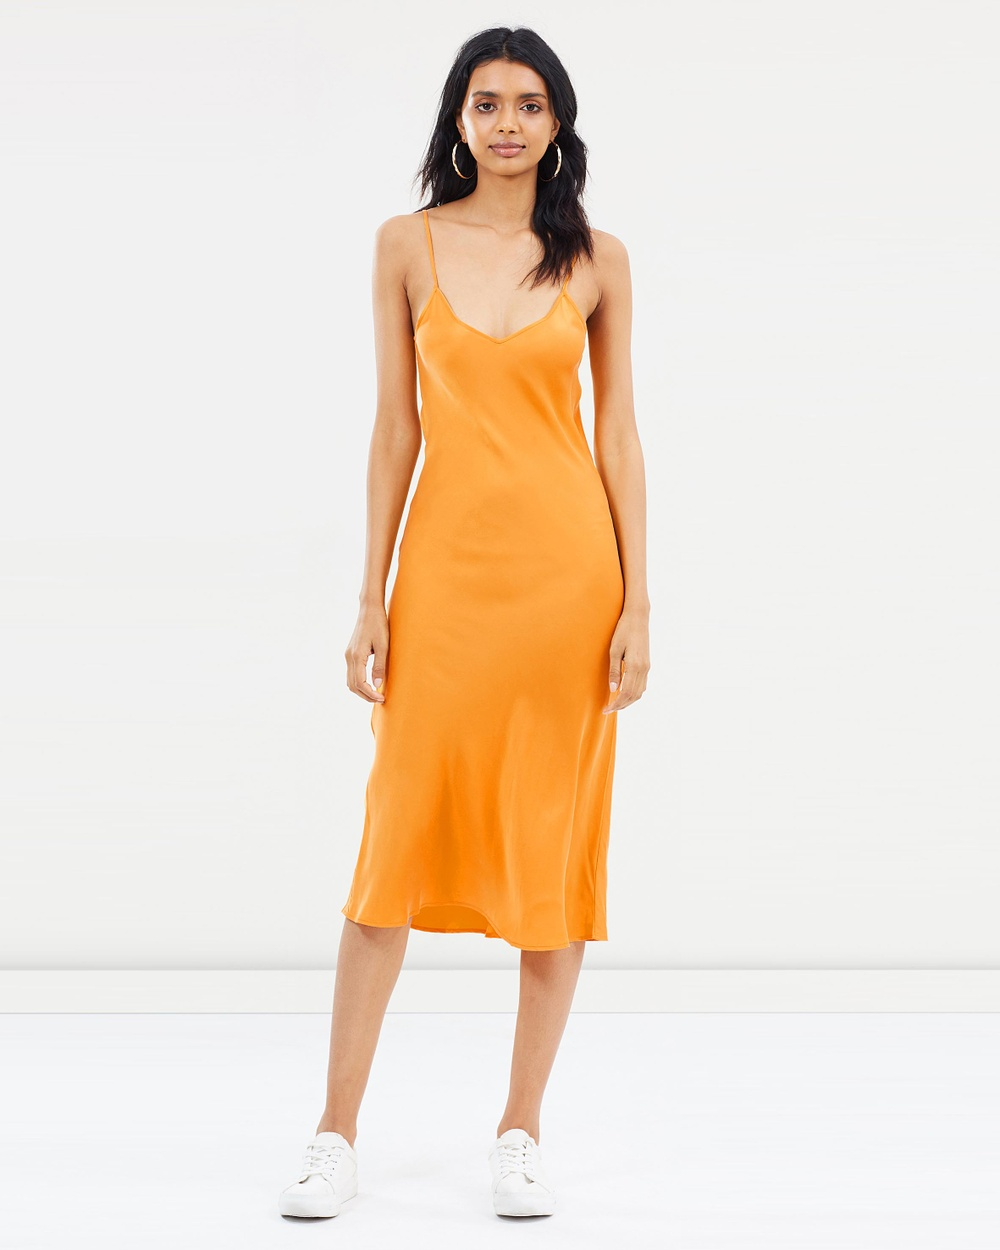 Silk Laundry Classic 90s Silk Slip Dress Dresses Iconic Marigold Classic 90s Silk Slip Dress